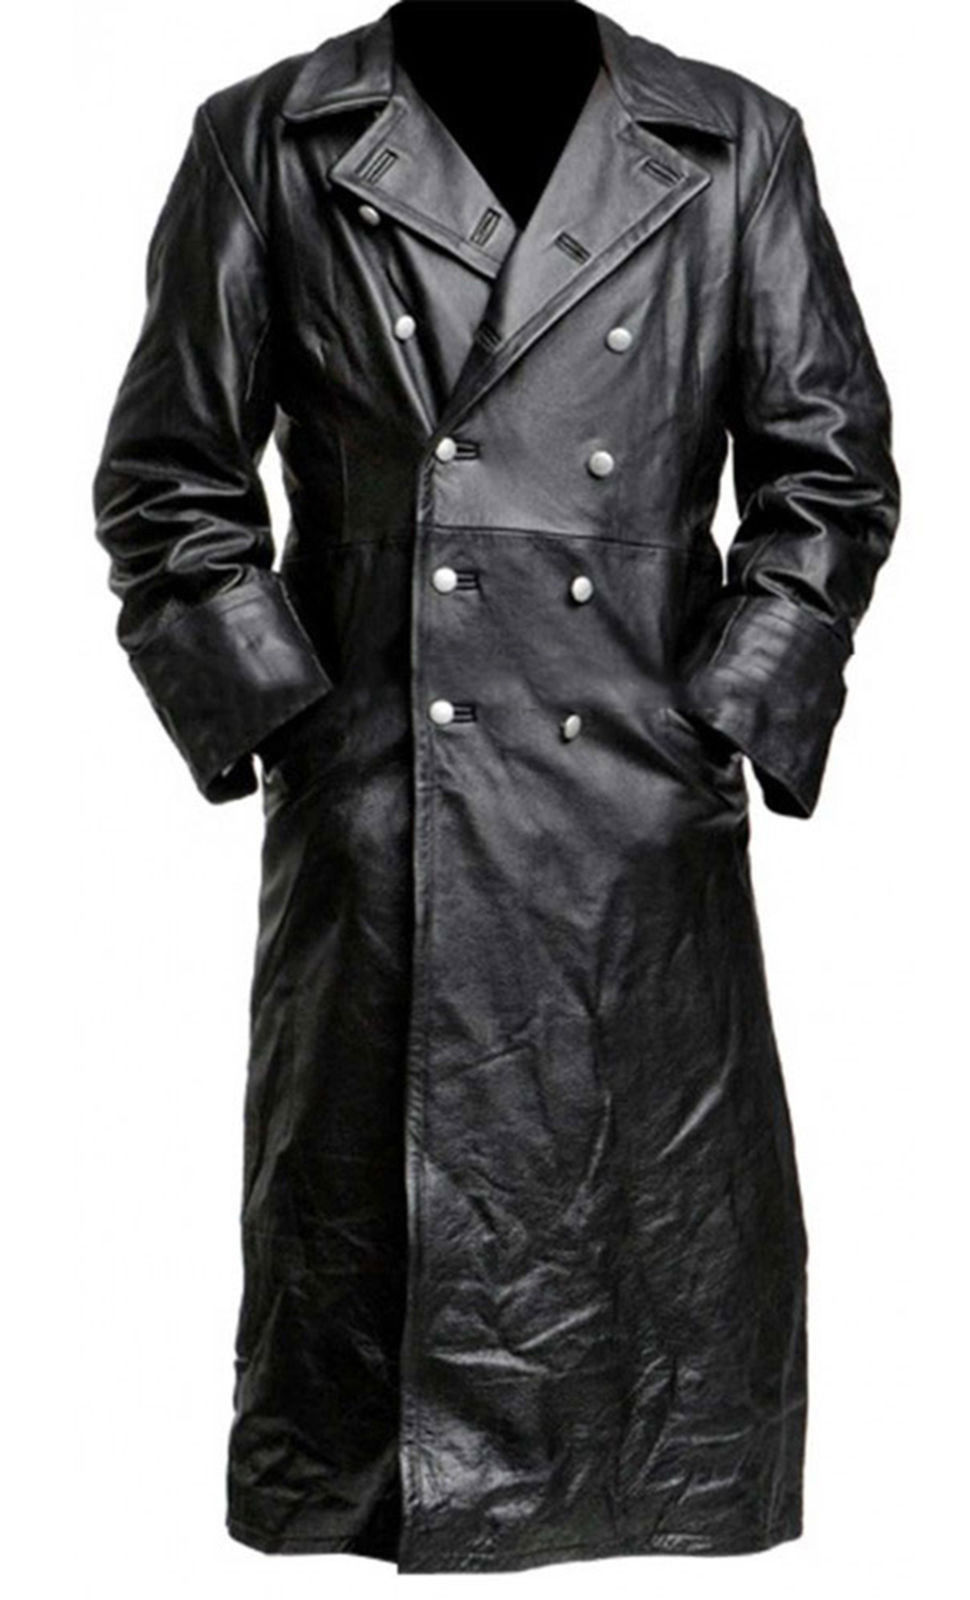 German Classic WW2 Military Officer Uniform Black Costume Leather Trench Coat